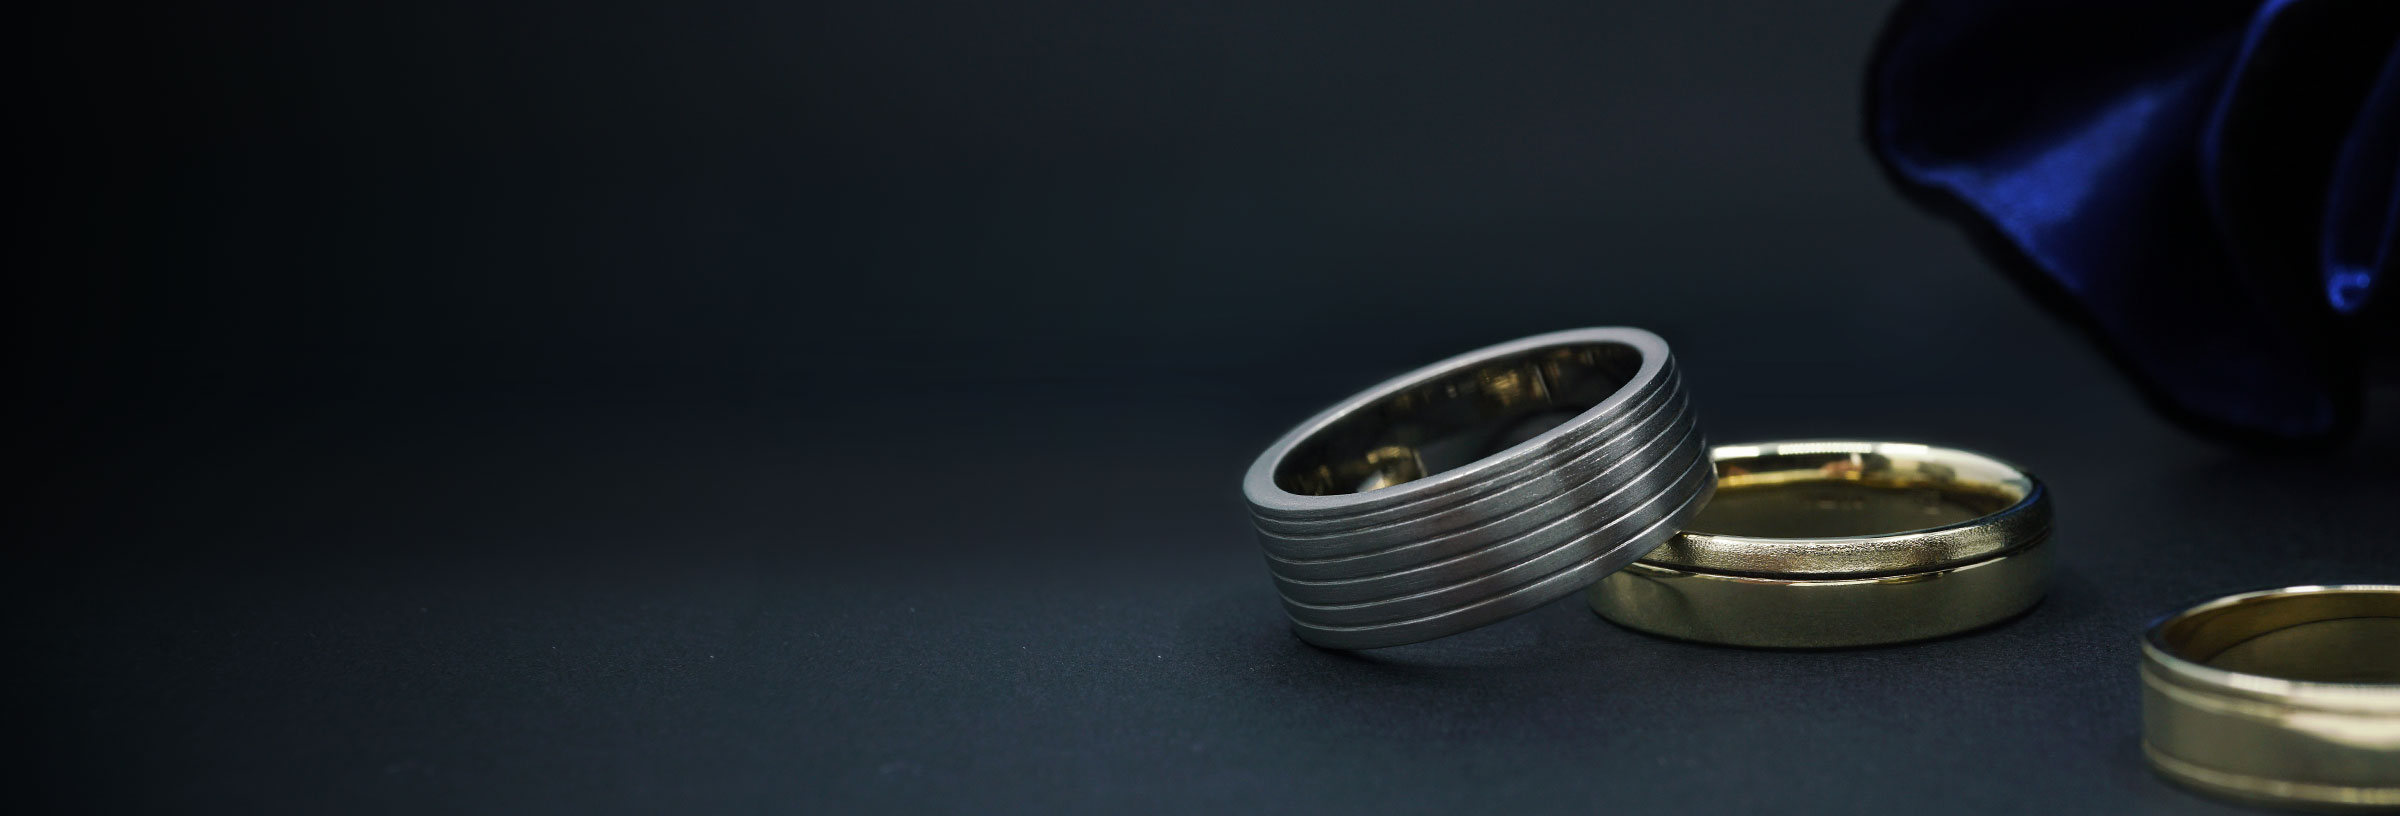 saw-cut-line-wedding-bands-rtw-collection-banner-image